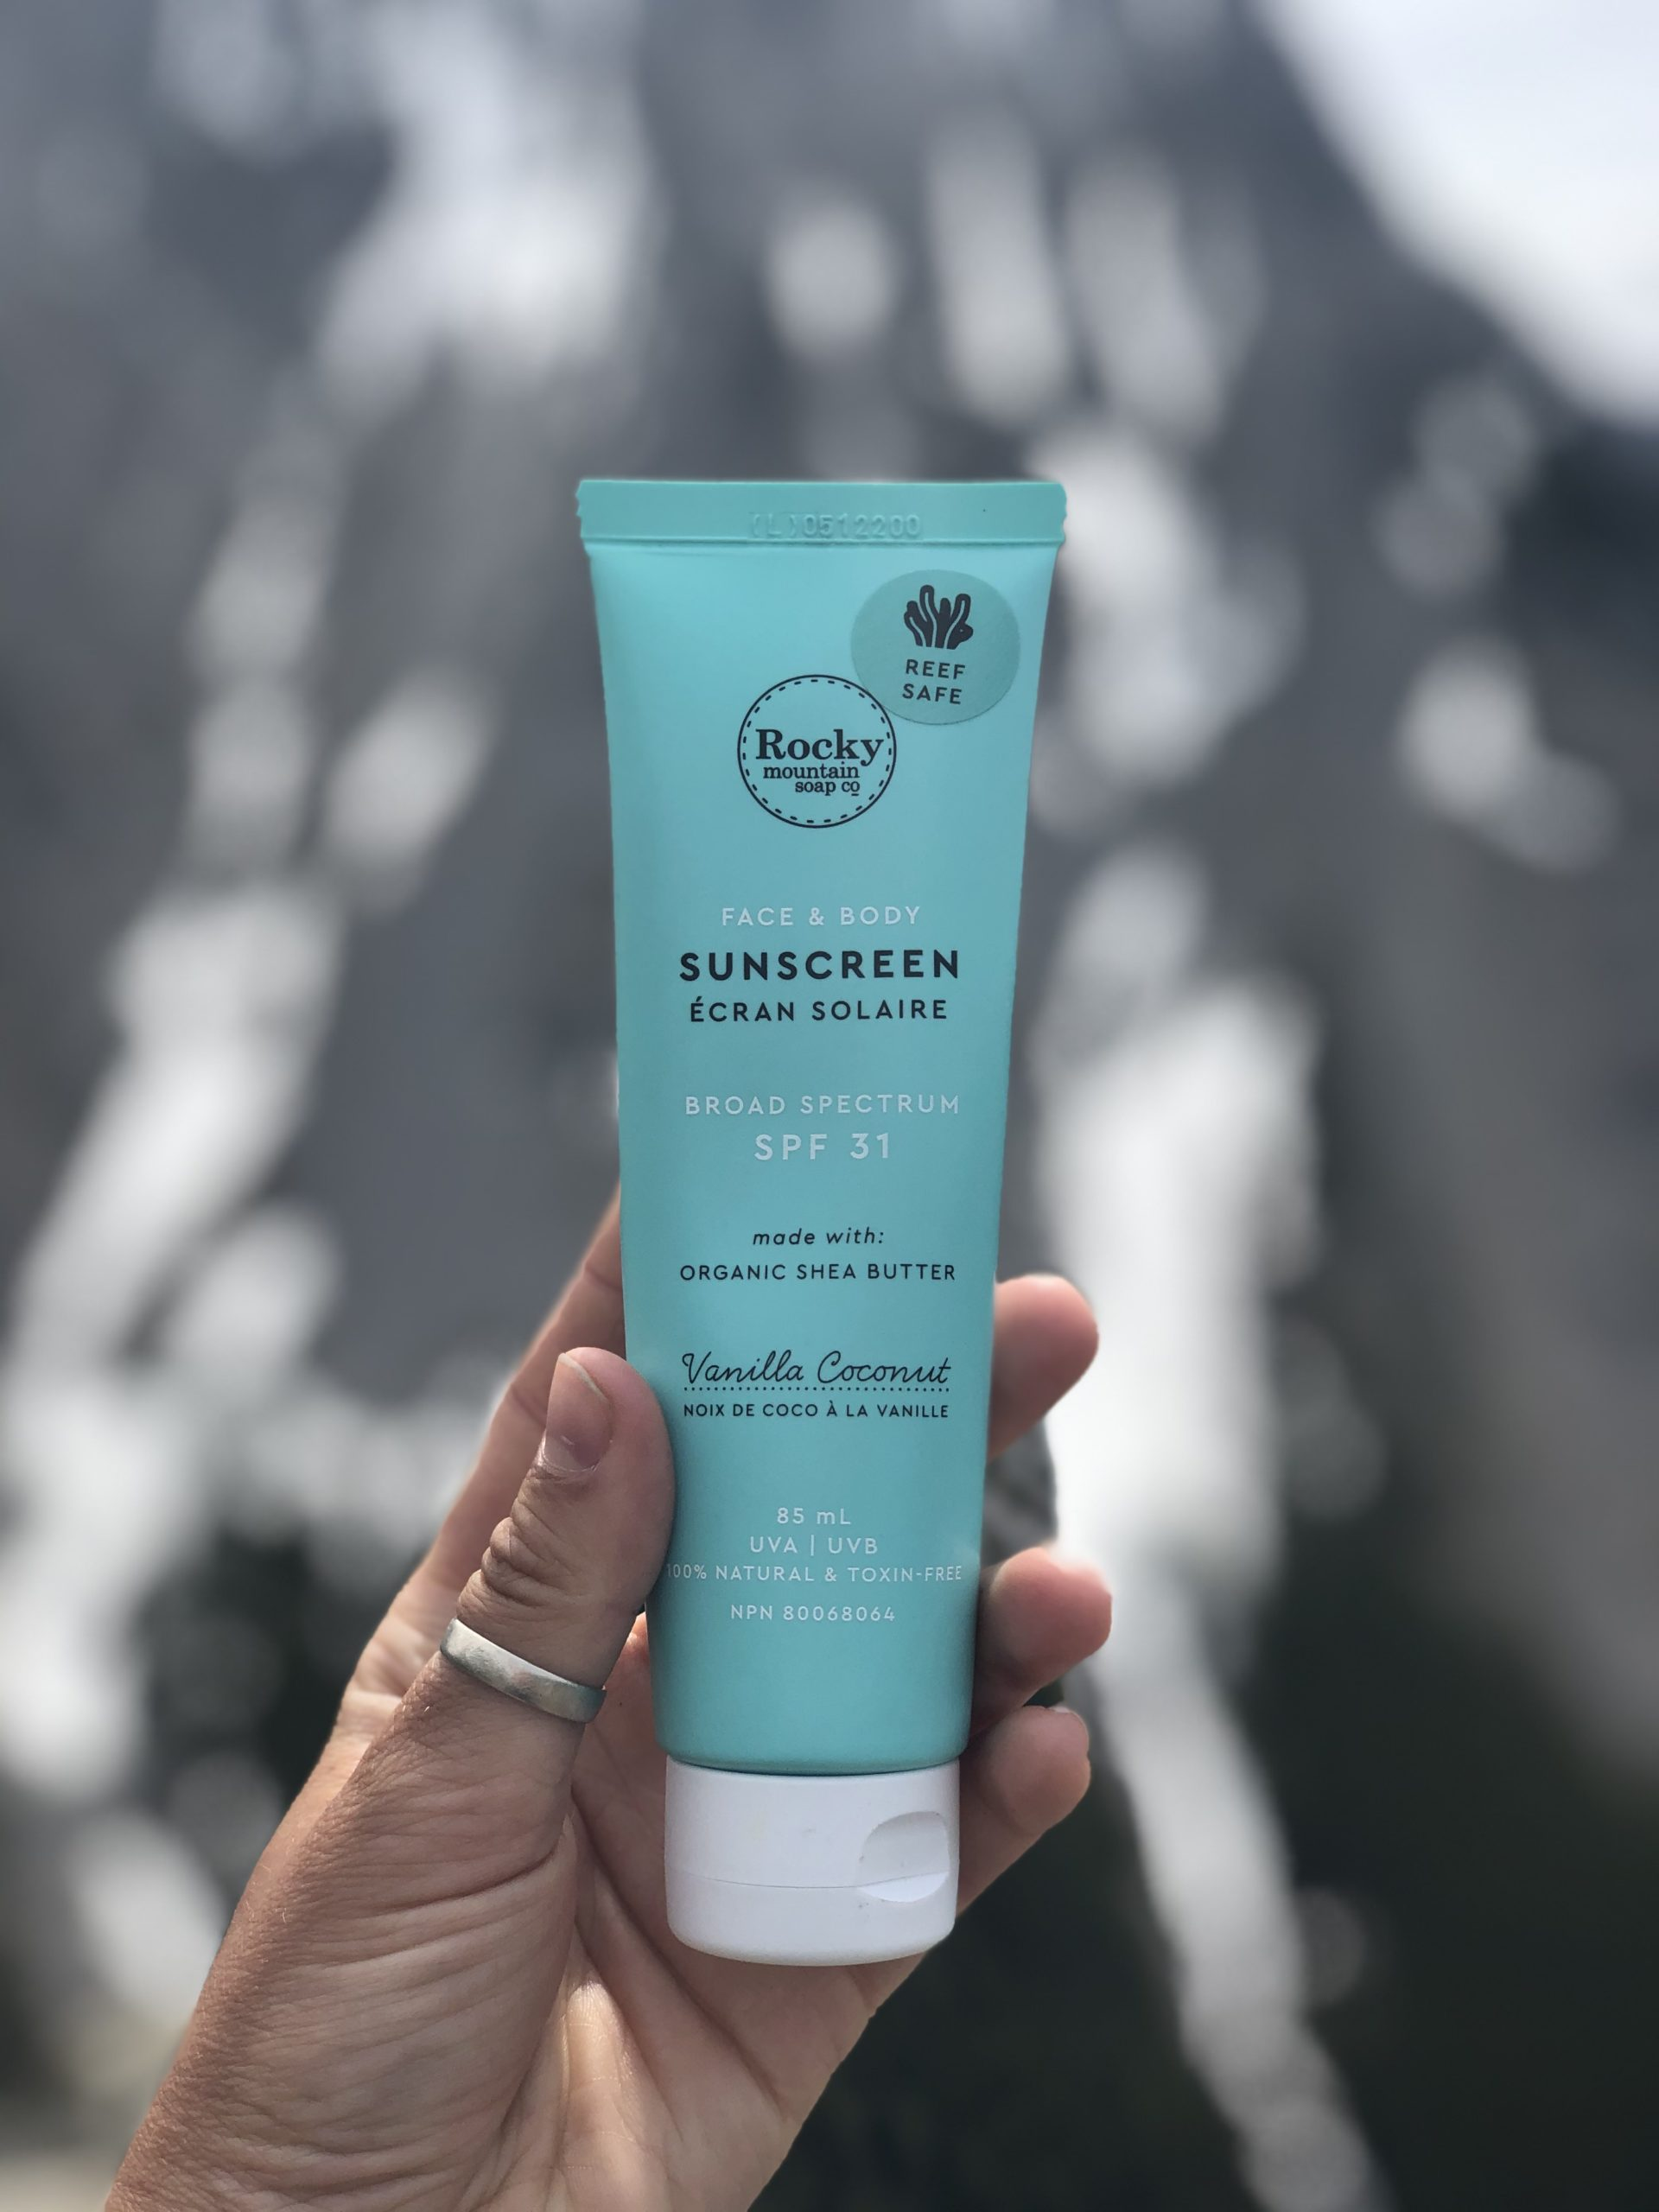 day-hiking-in-the-canadian-rockies-rocky-mountain-soap-co-sunscreen-playfair-wild